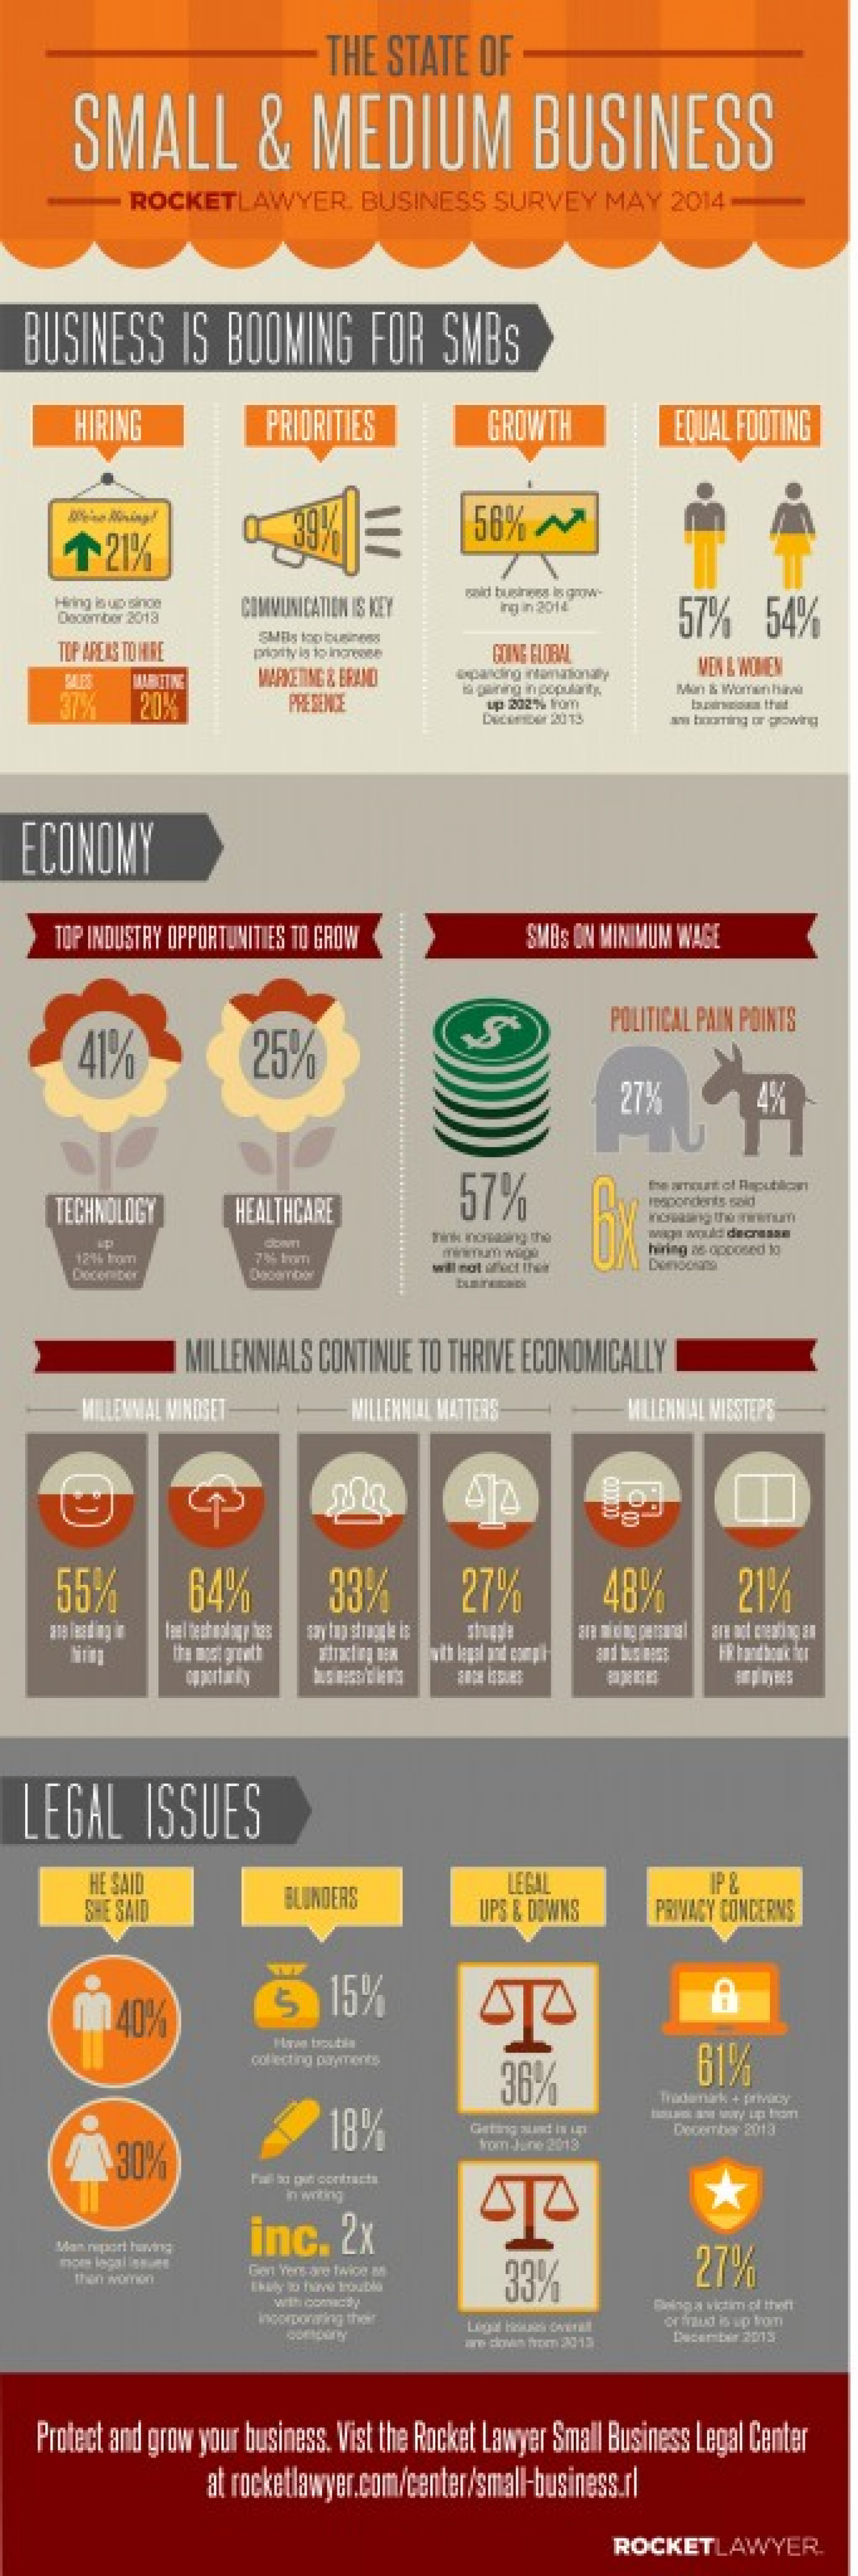 The State of Small & Medium Business - May 2014 Infographic